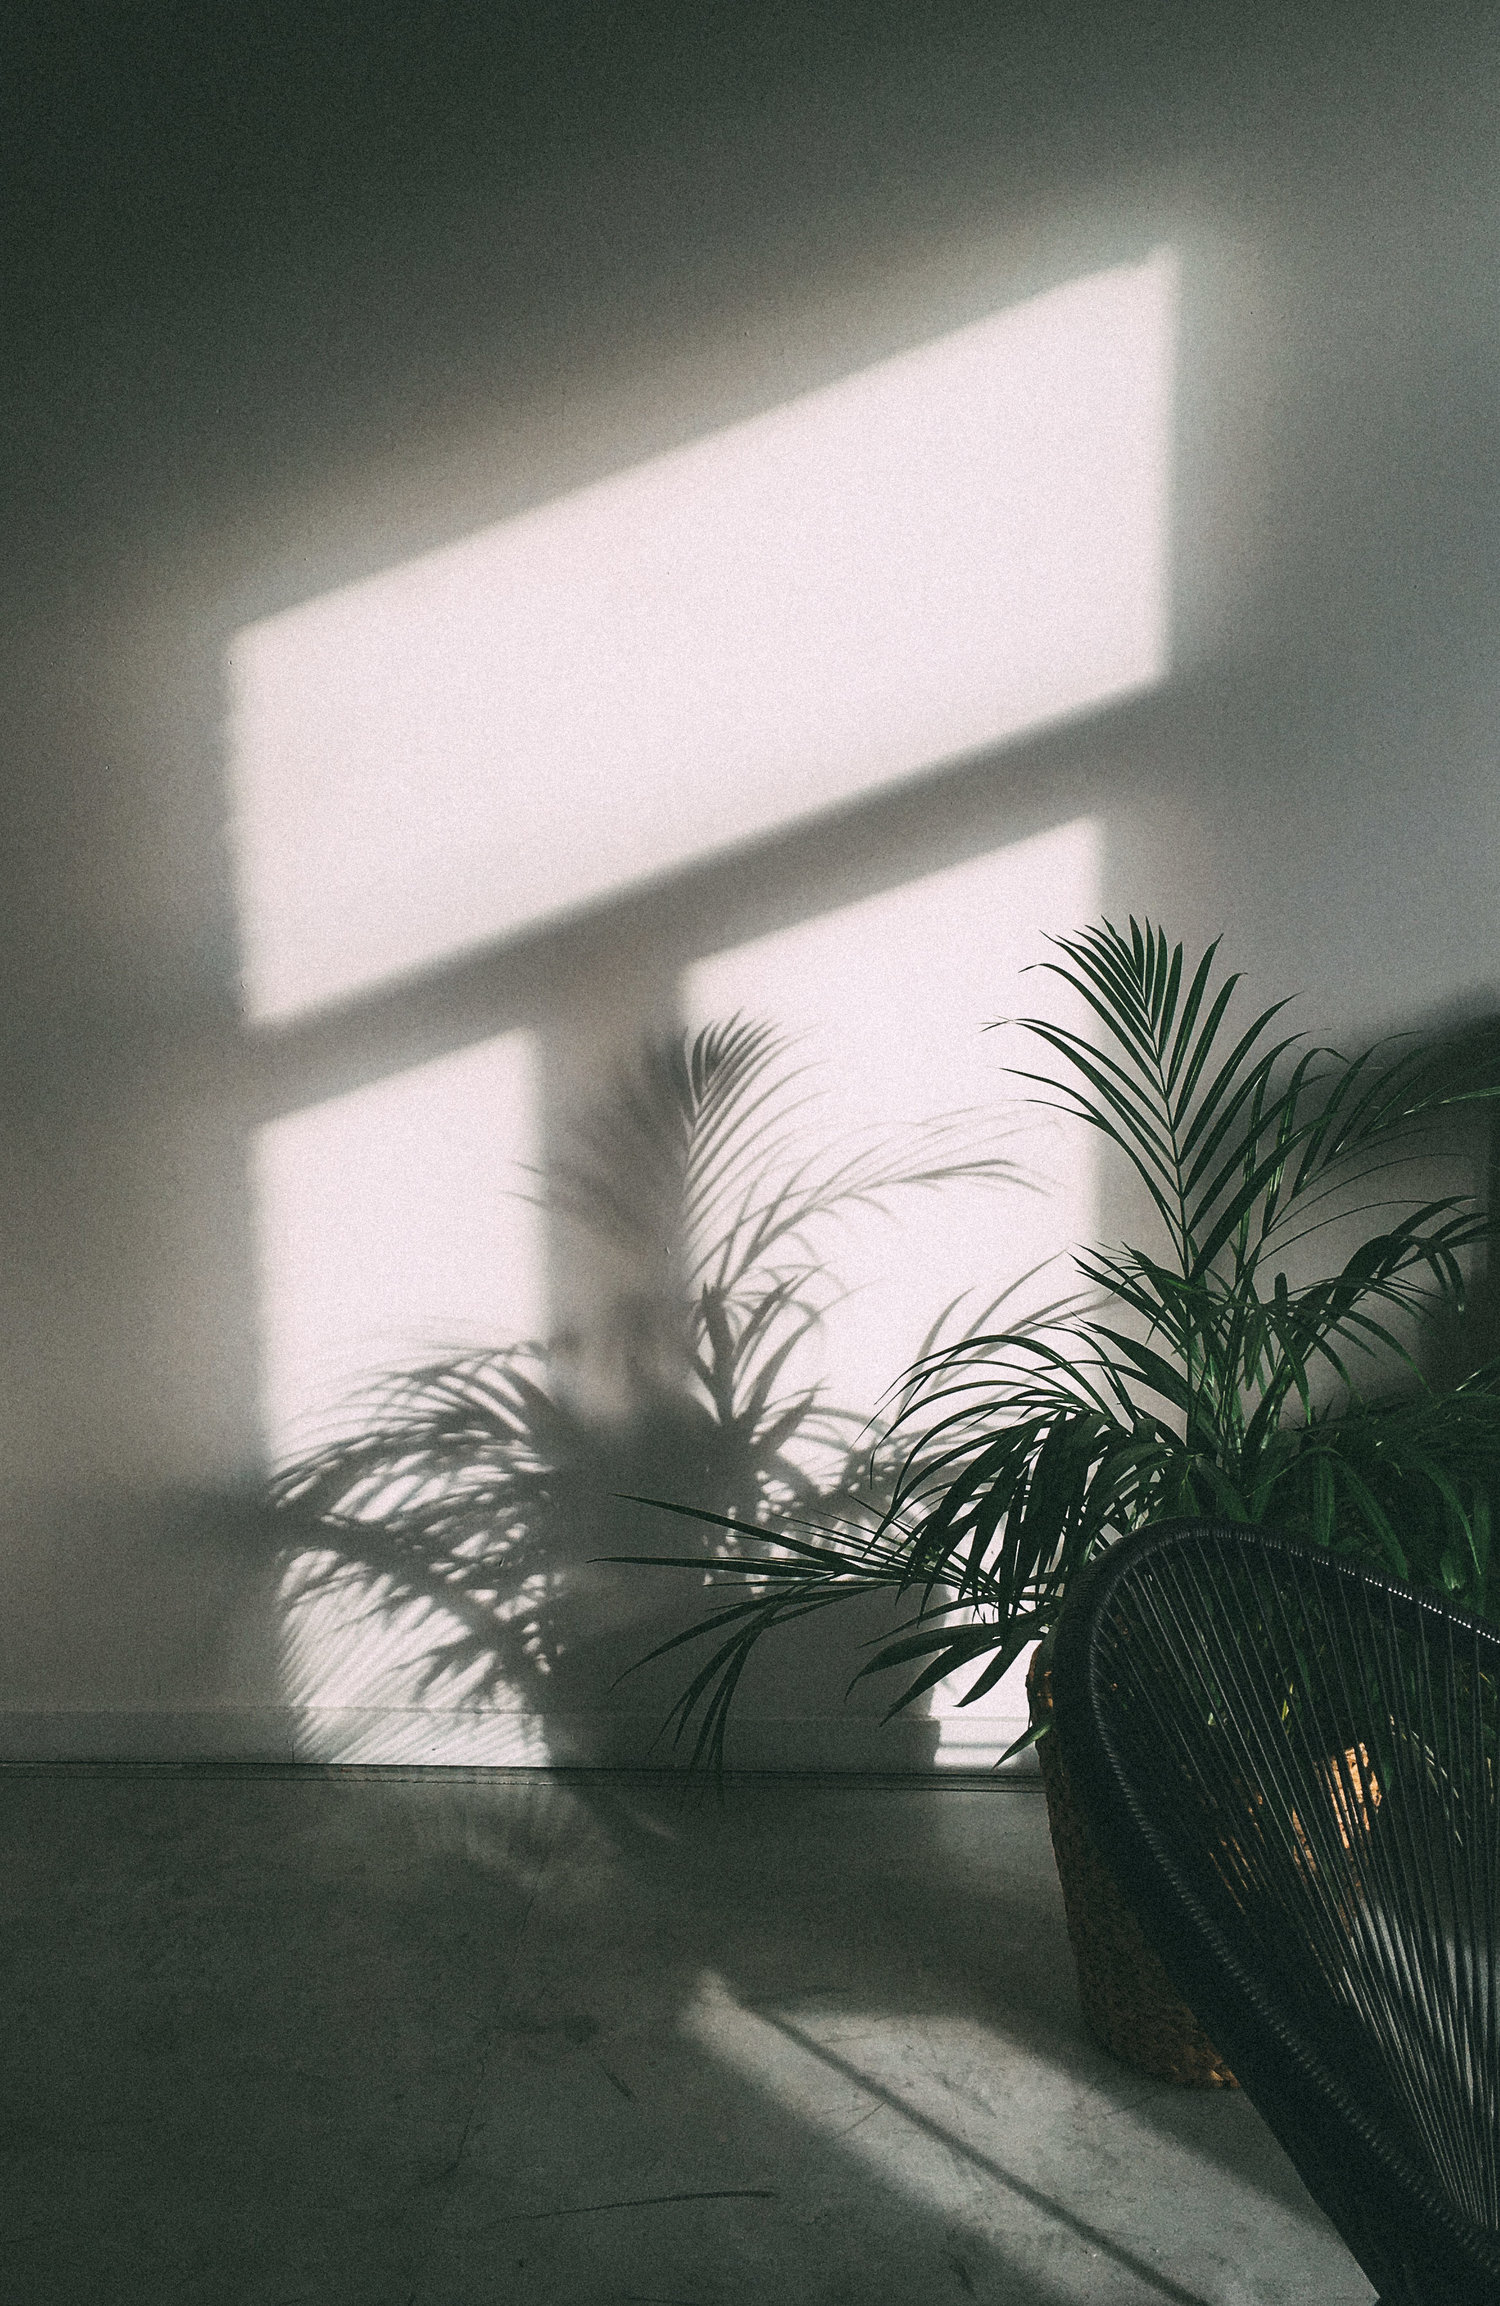 Sunshine on the white wall